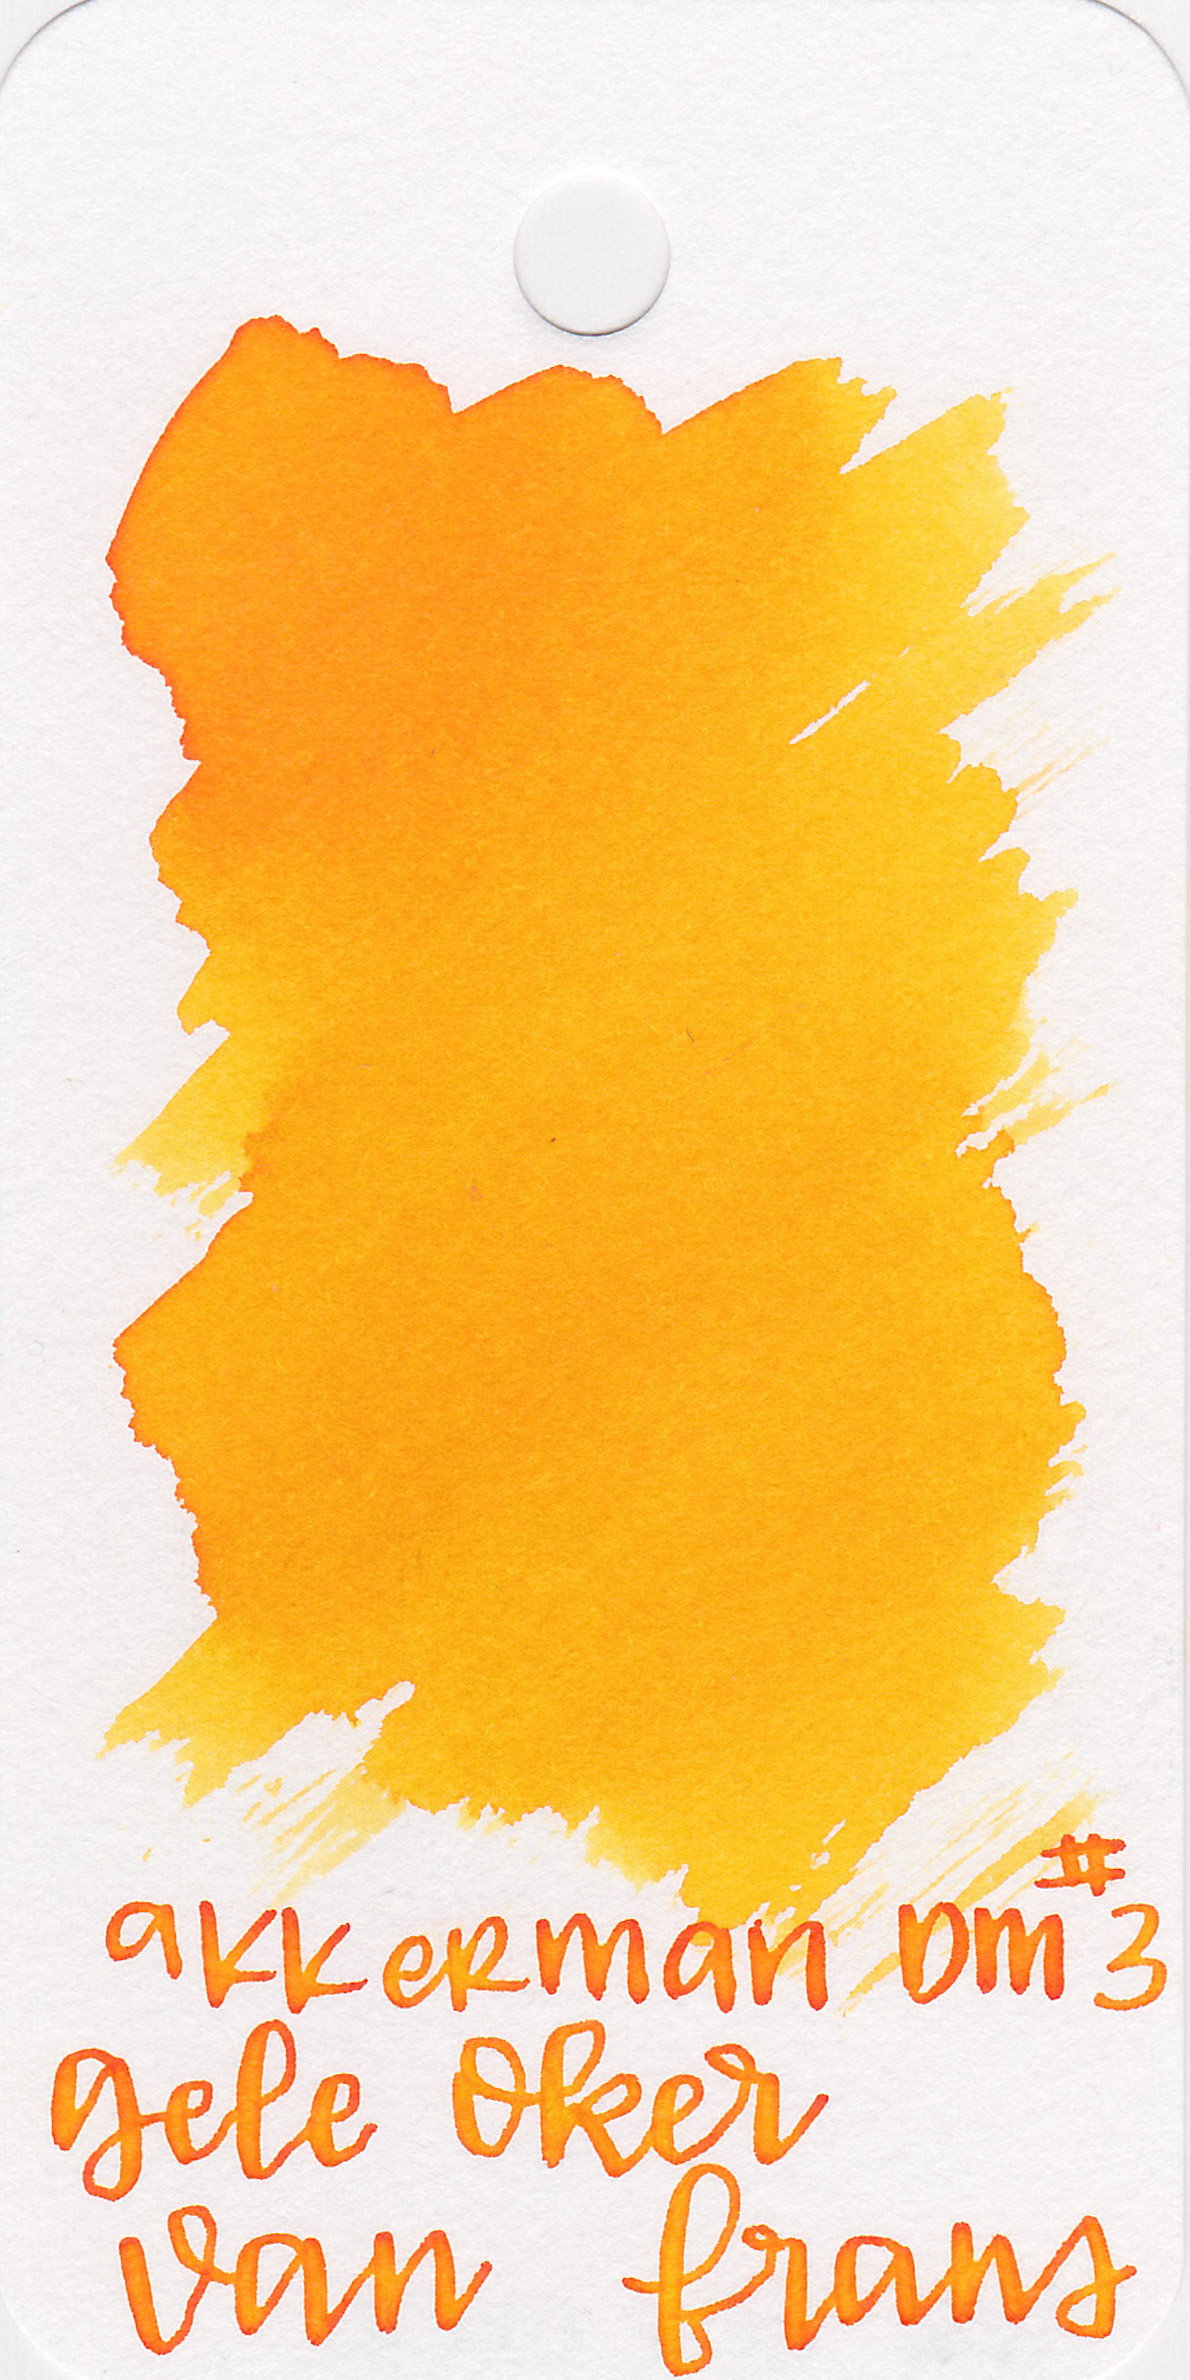 The color: - Gele Oker Van Frans is a bright, happy yellow, almost an orange.